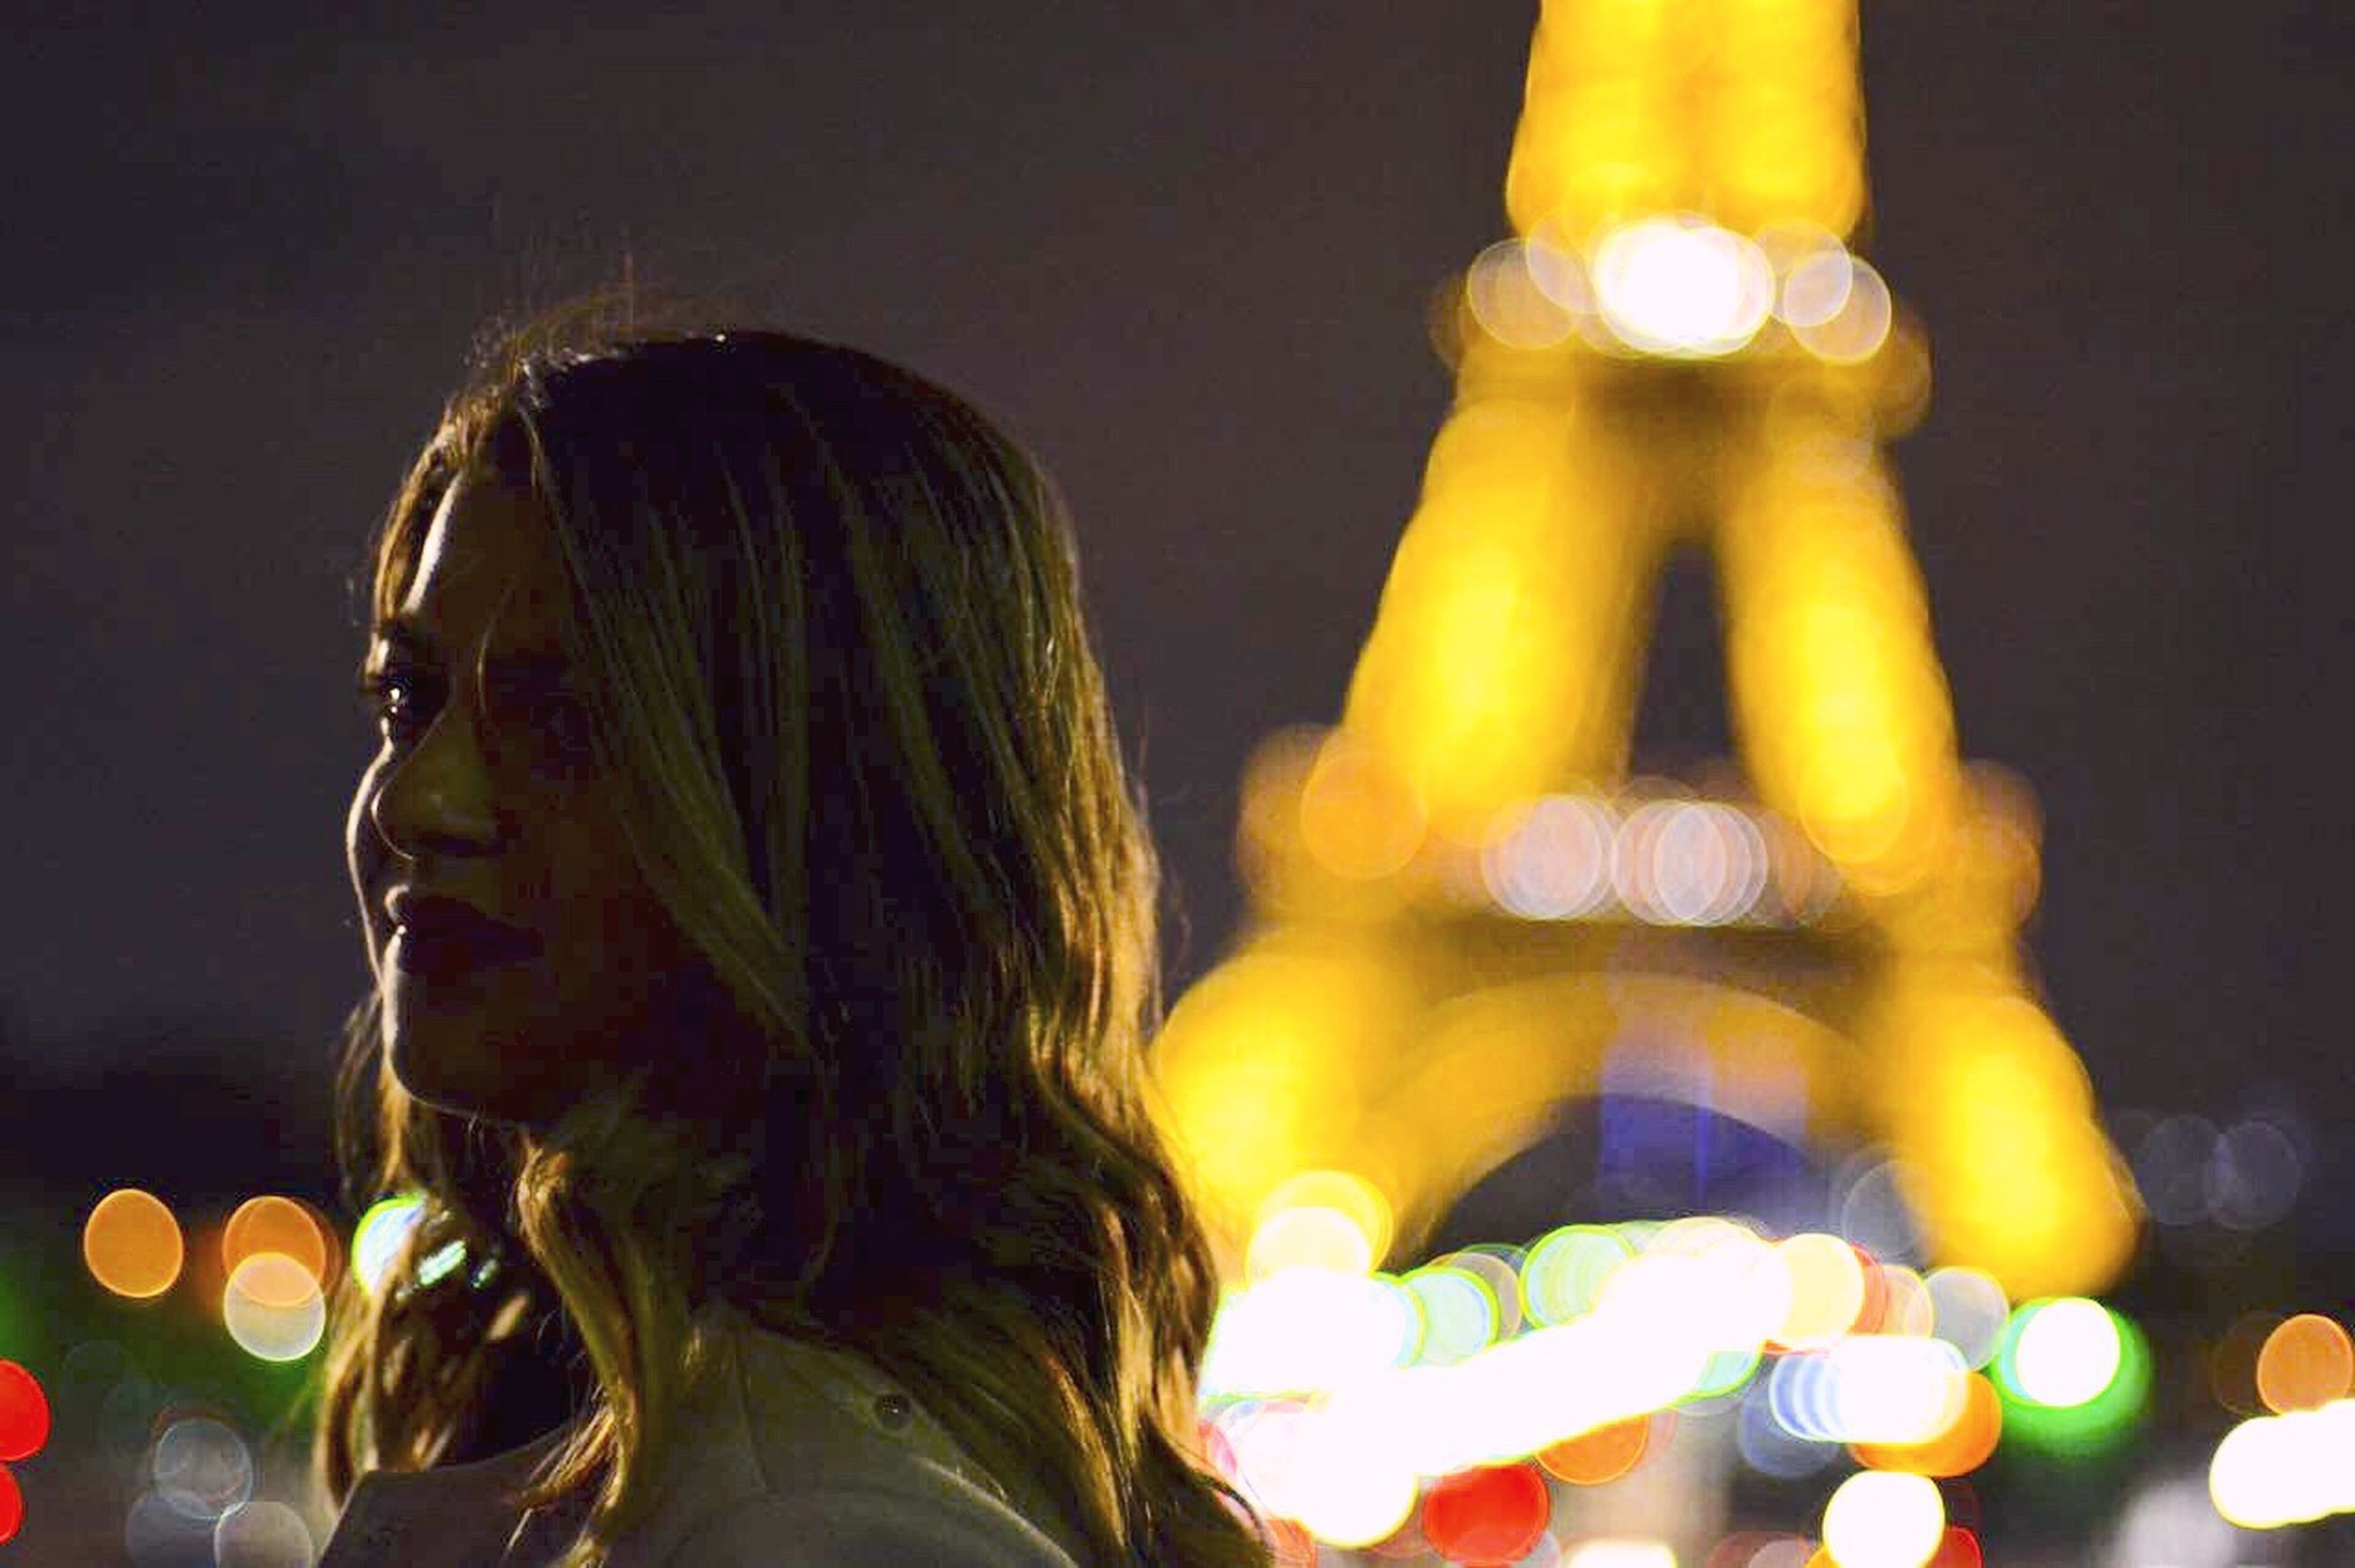 night, long hair, one person, illuminated, one woman only, side view, young adult, adult, only women, headshot, people, adults only, one young woman only, young women, outdoors, city, close-up